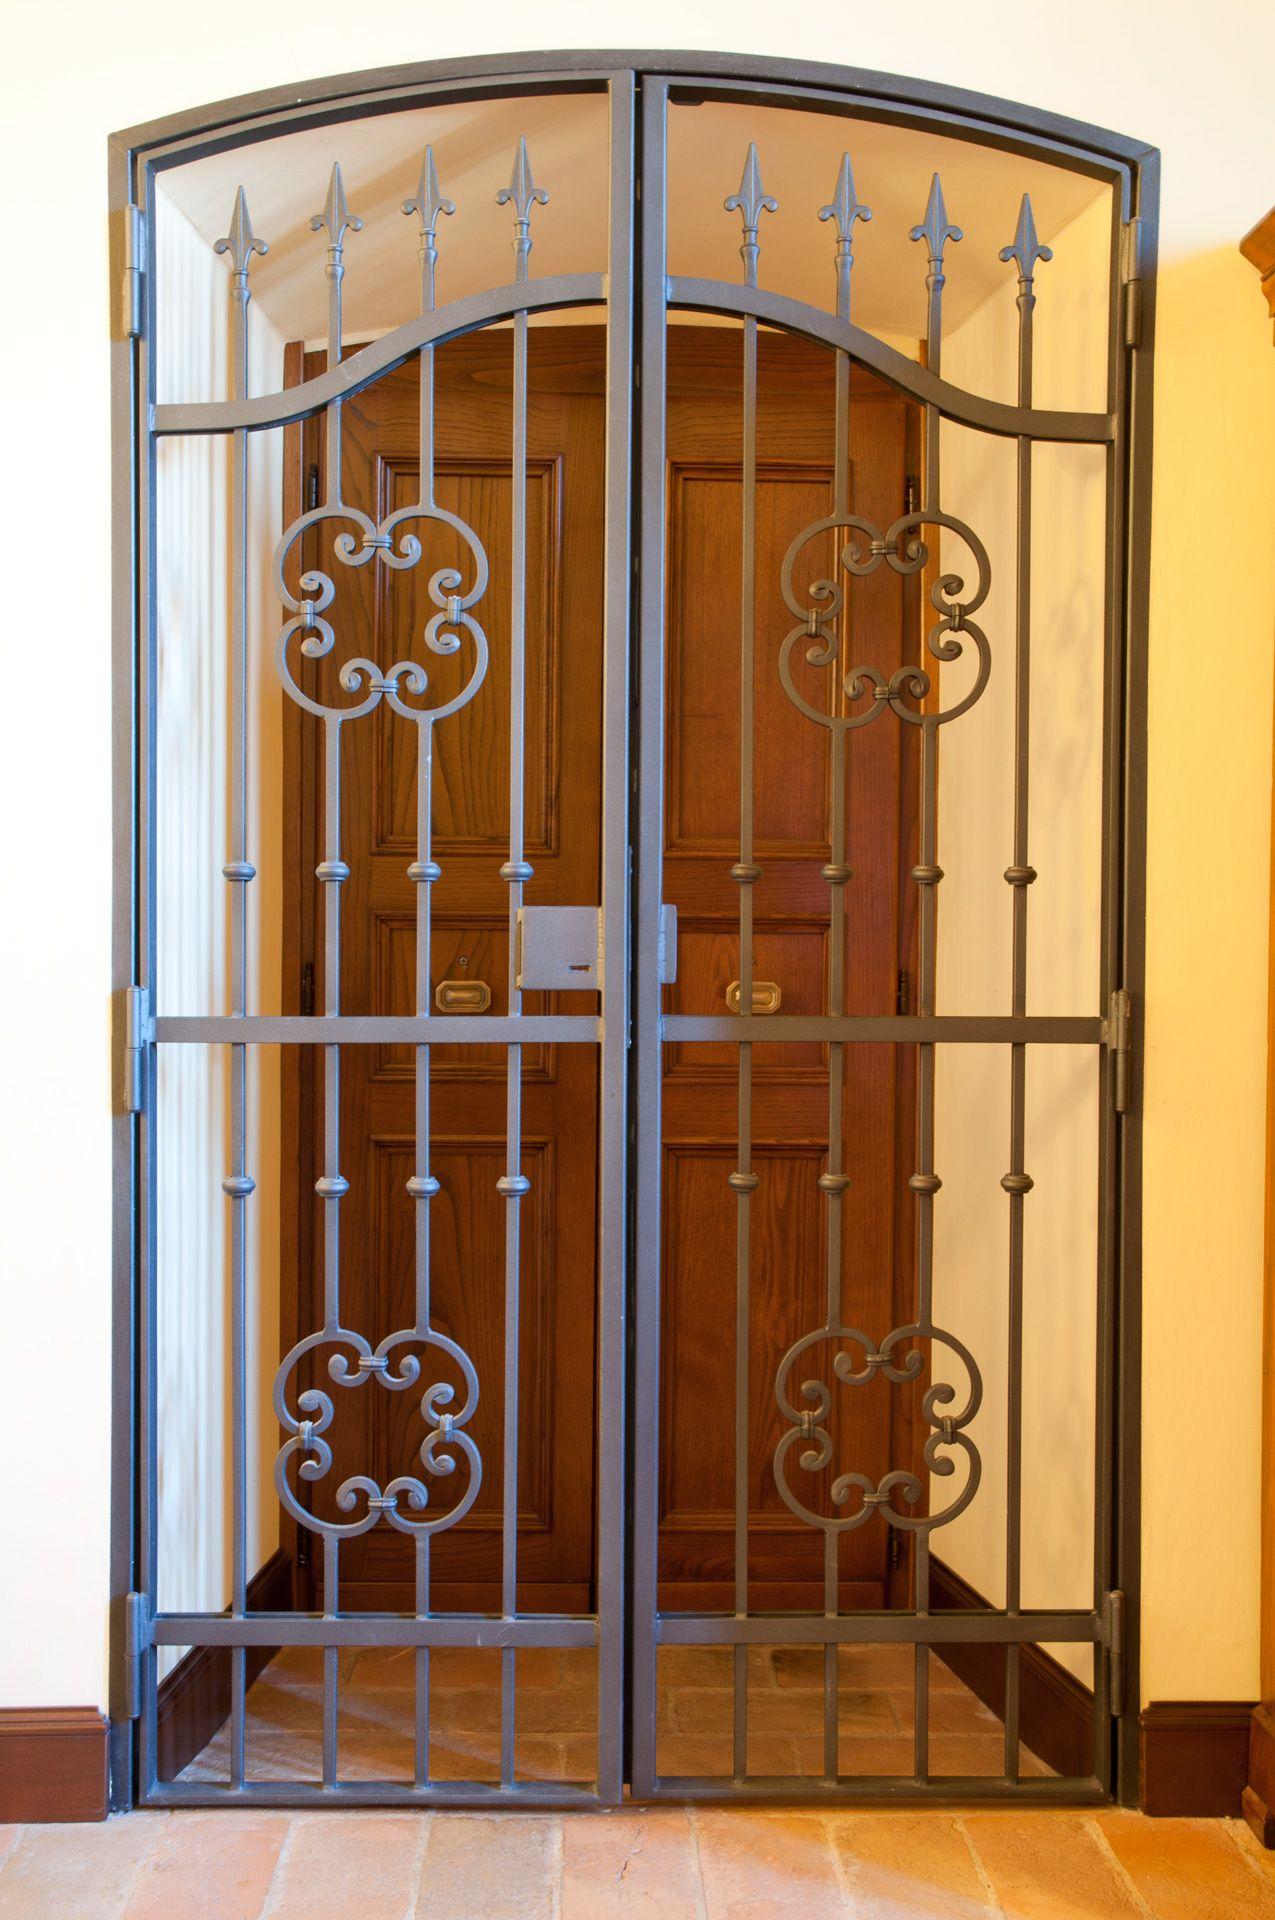 Open Front Door From Inside decoration, stunning wrought iron doors design with twin carving